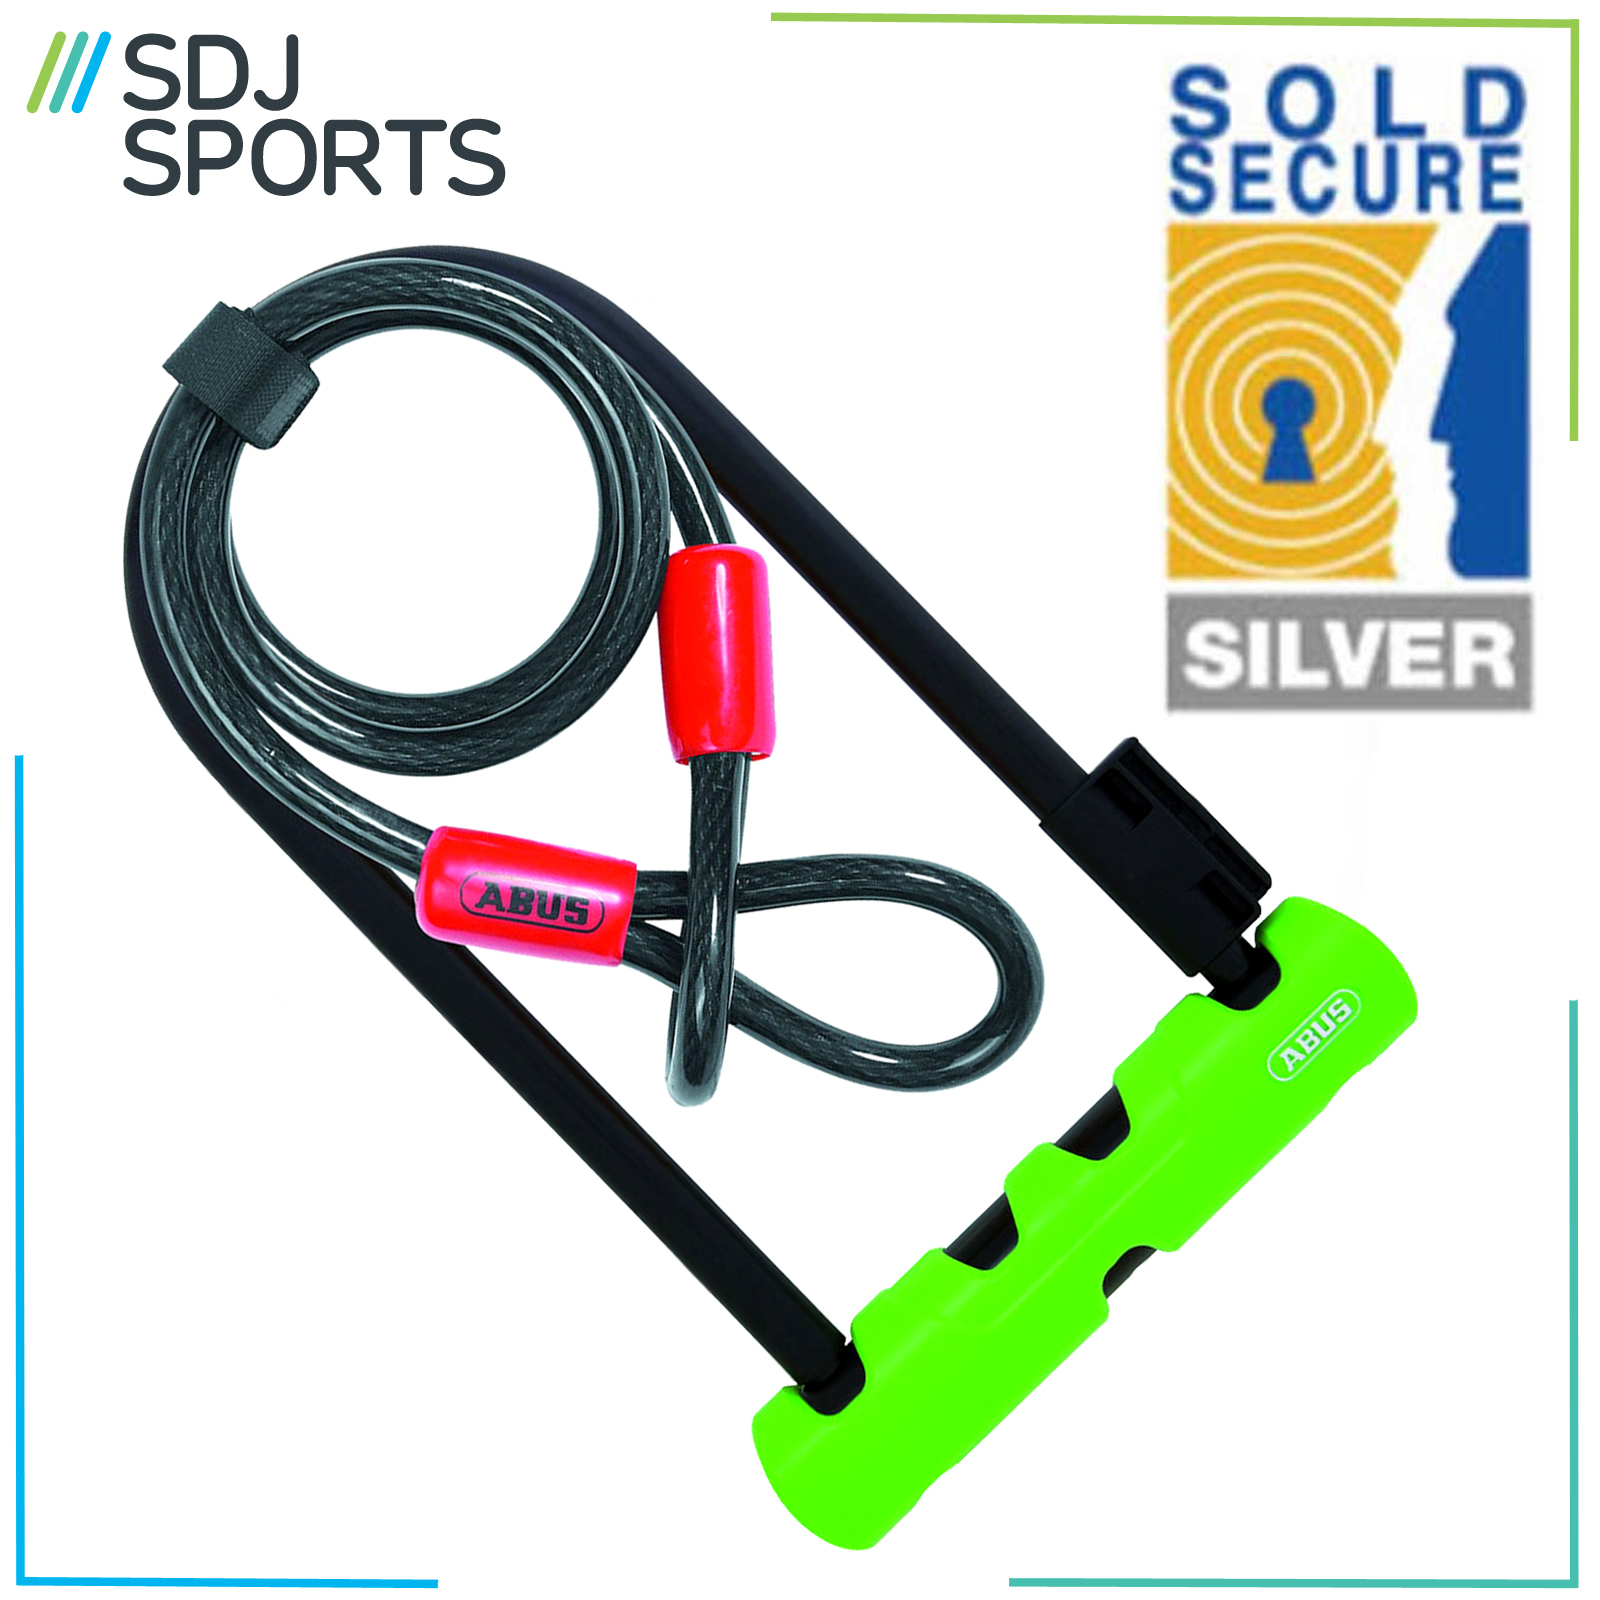 abus ultra 410 bike d lock with steel cable silver sold secure cycle lock ebay. Black Bedroom Furniture Sets. Home Design Ideas